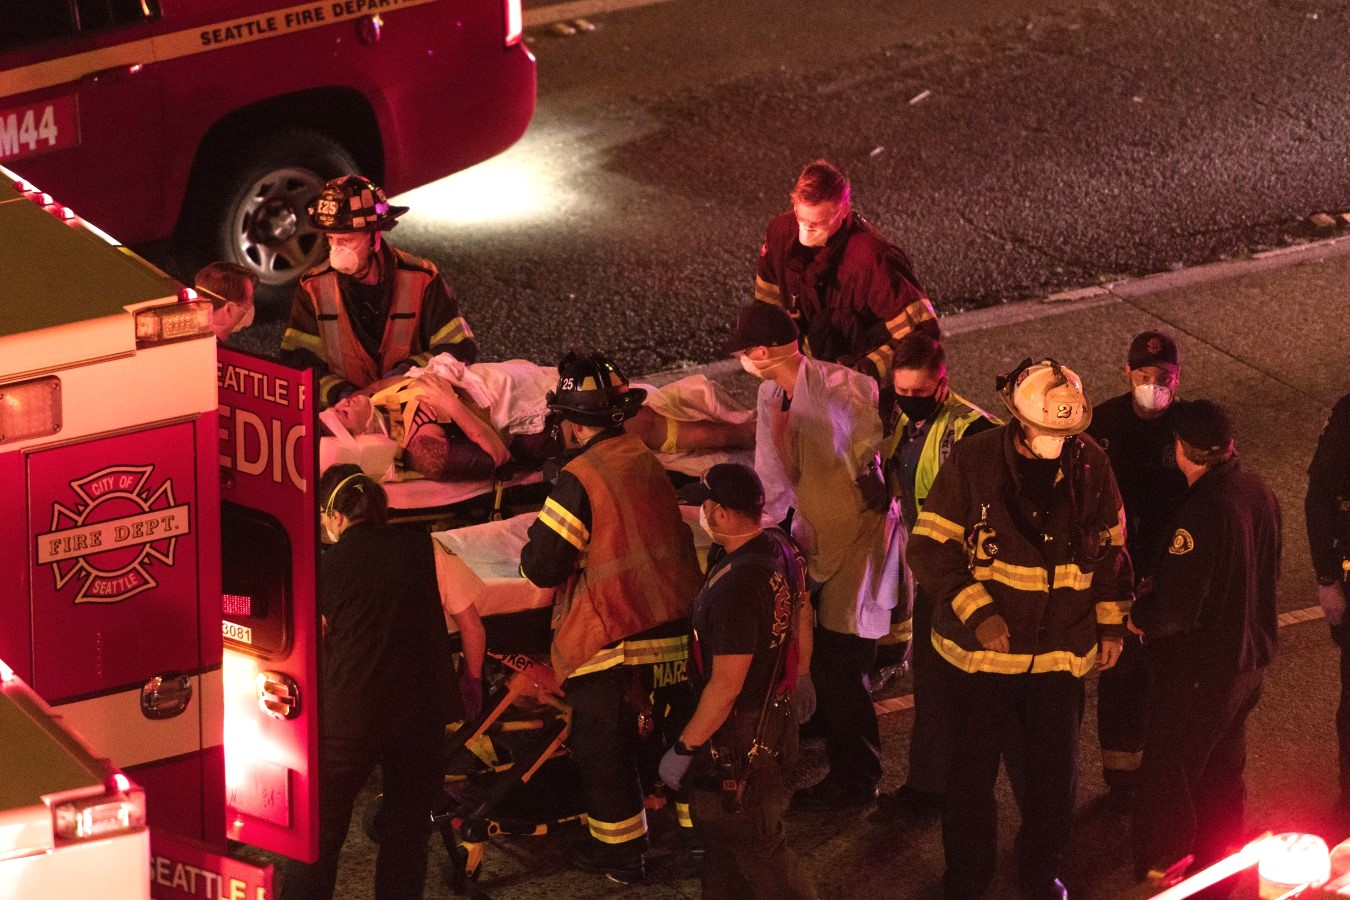 Incident at Seattle